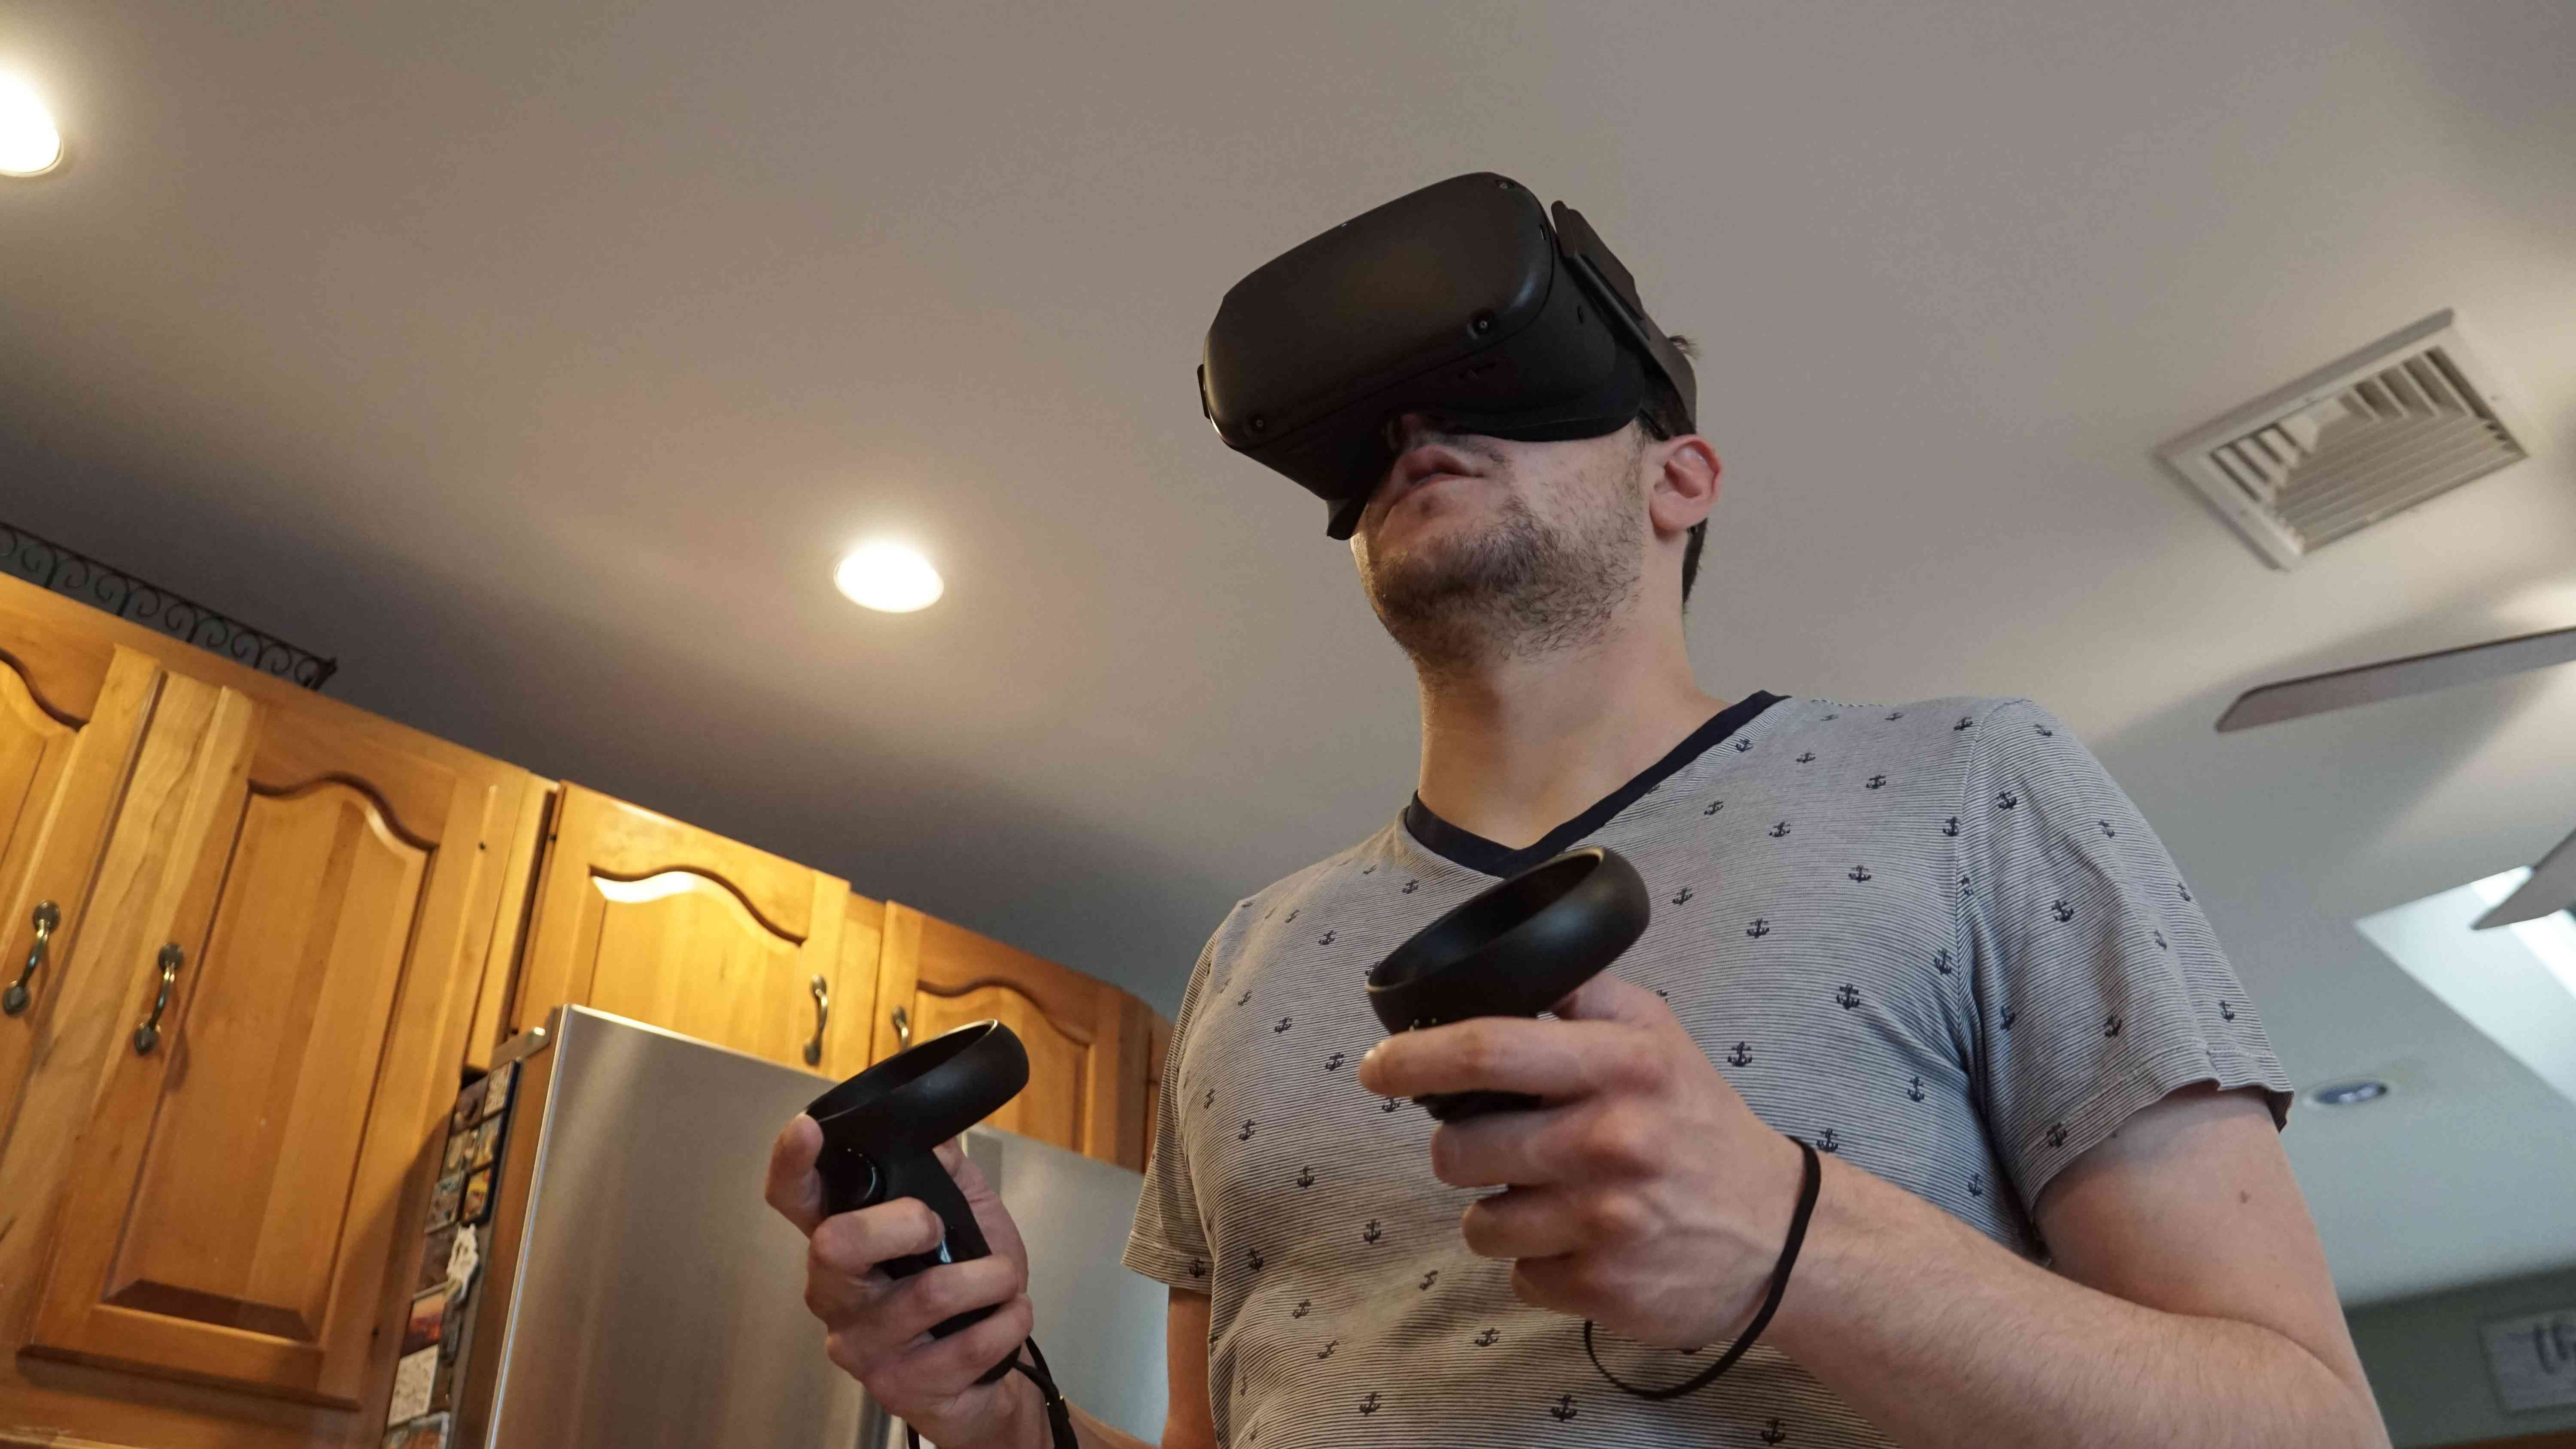 Person using Oculus Quest in their kitchen